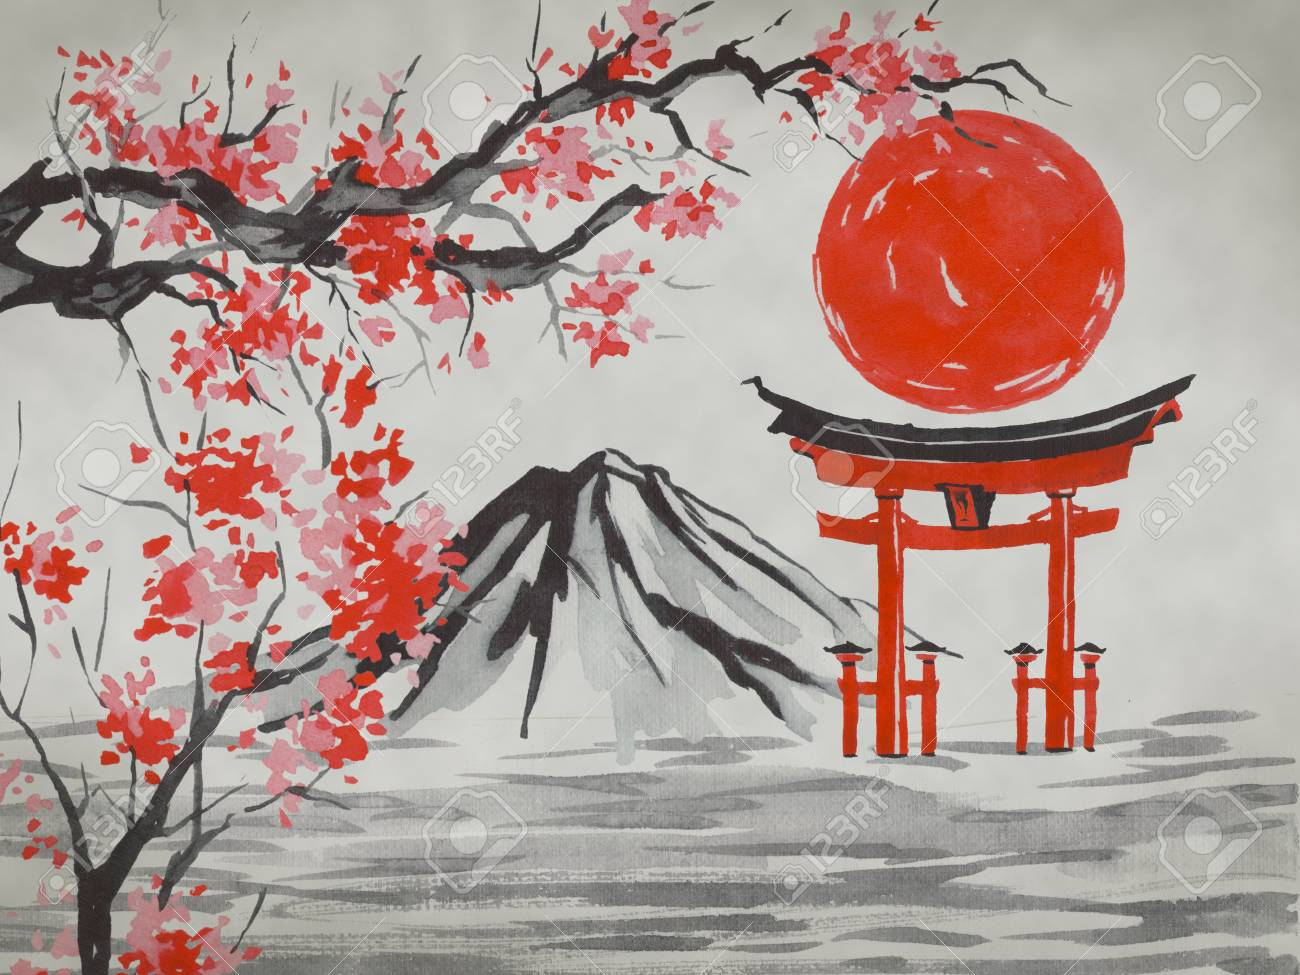 Japan Traditional Sumi E Painting Watercolor And Ink Illustration Stock Photo Picture And Royalty Free Image Image 116756904